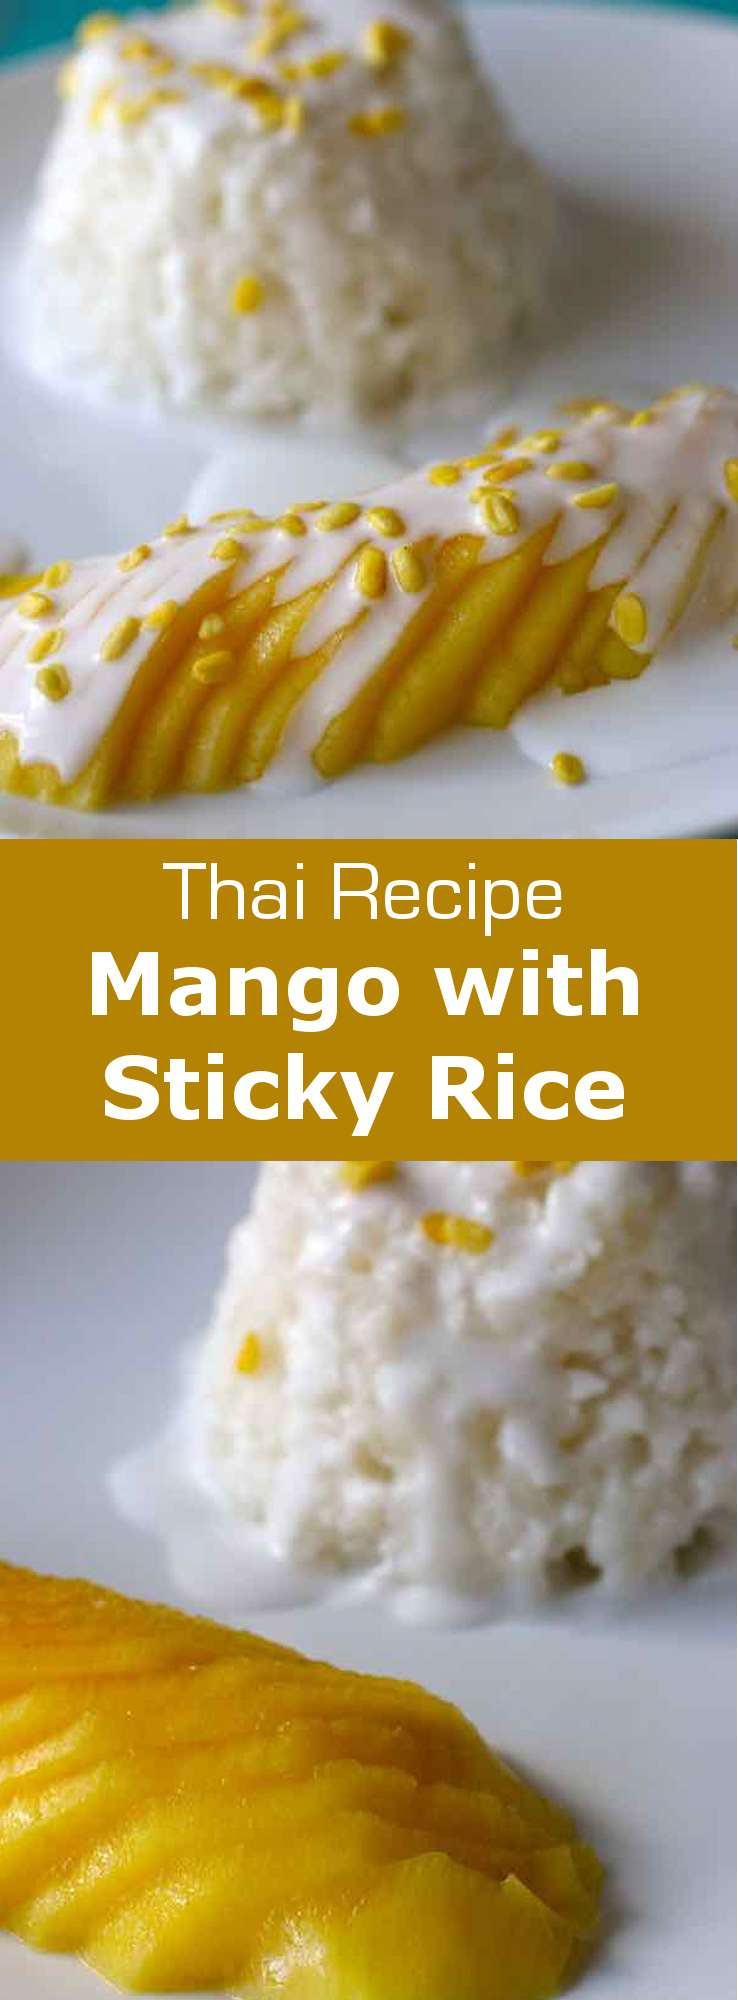 Mango with Sticky Rice - Traditional Thai Recipe | 196 flavors